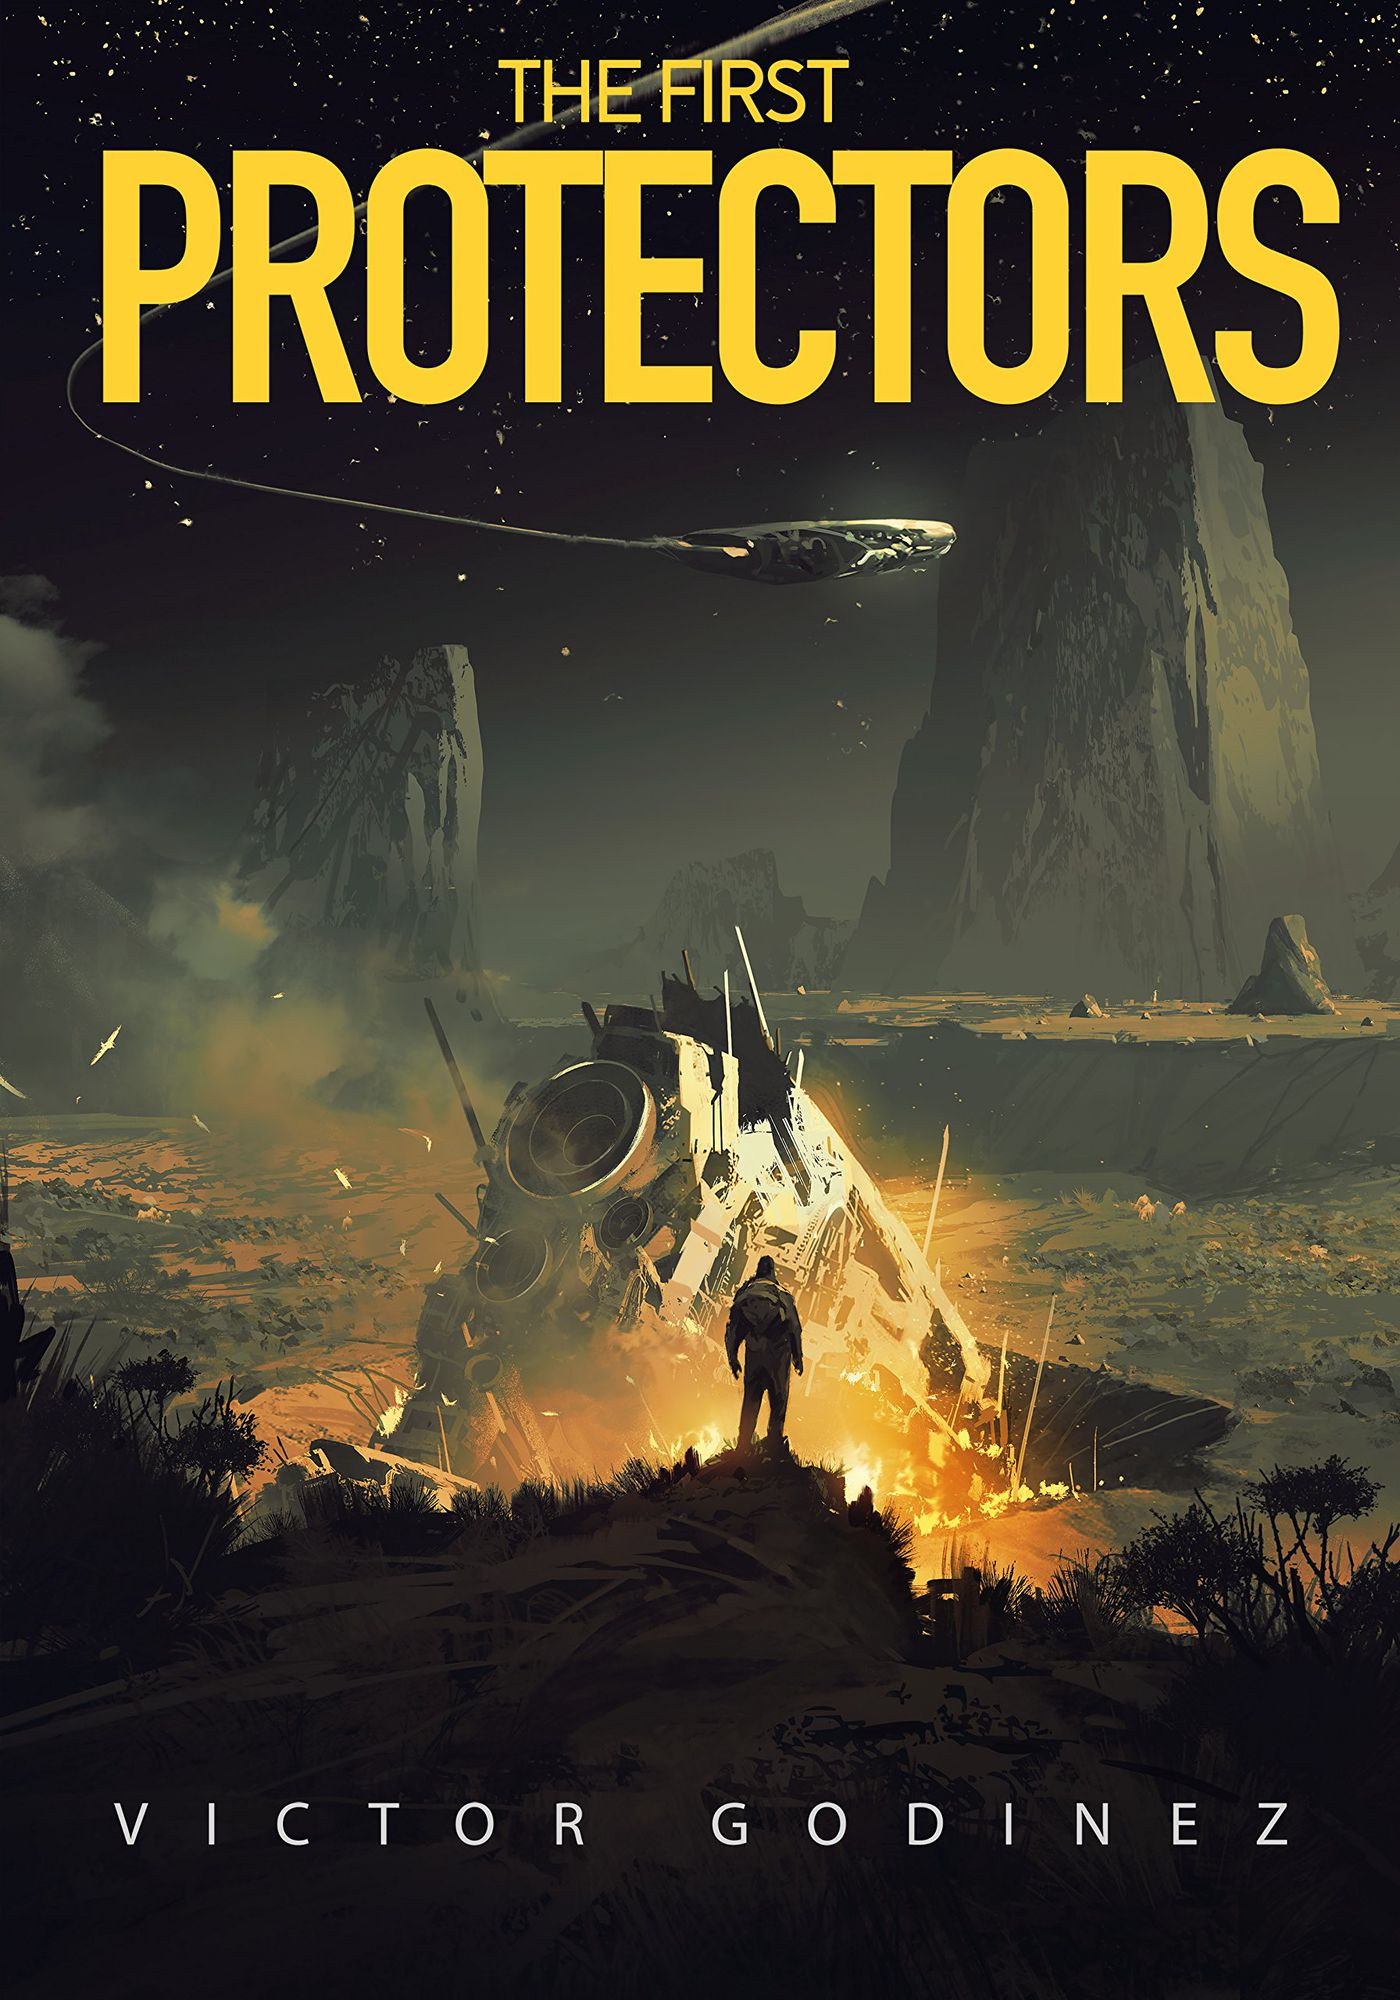 9 new sci-fi and fantasy books to check out this October - The Verge